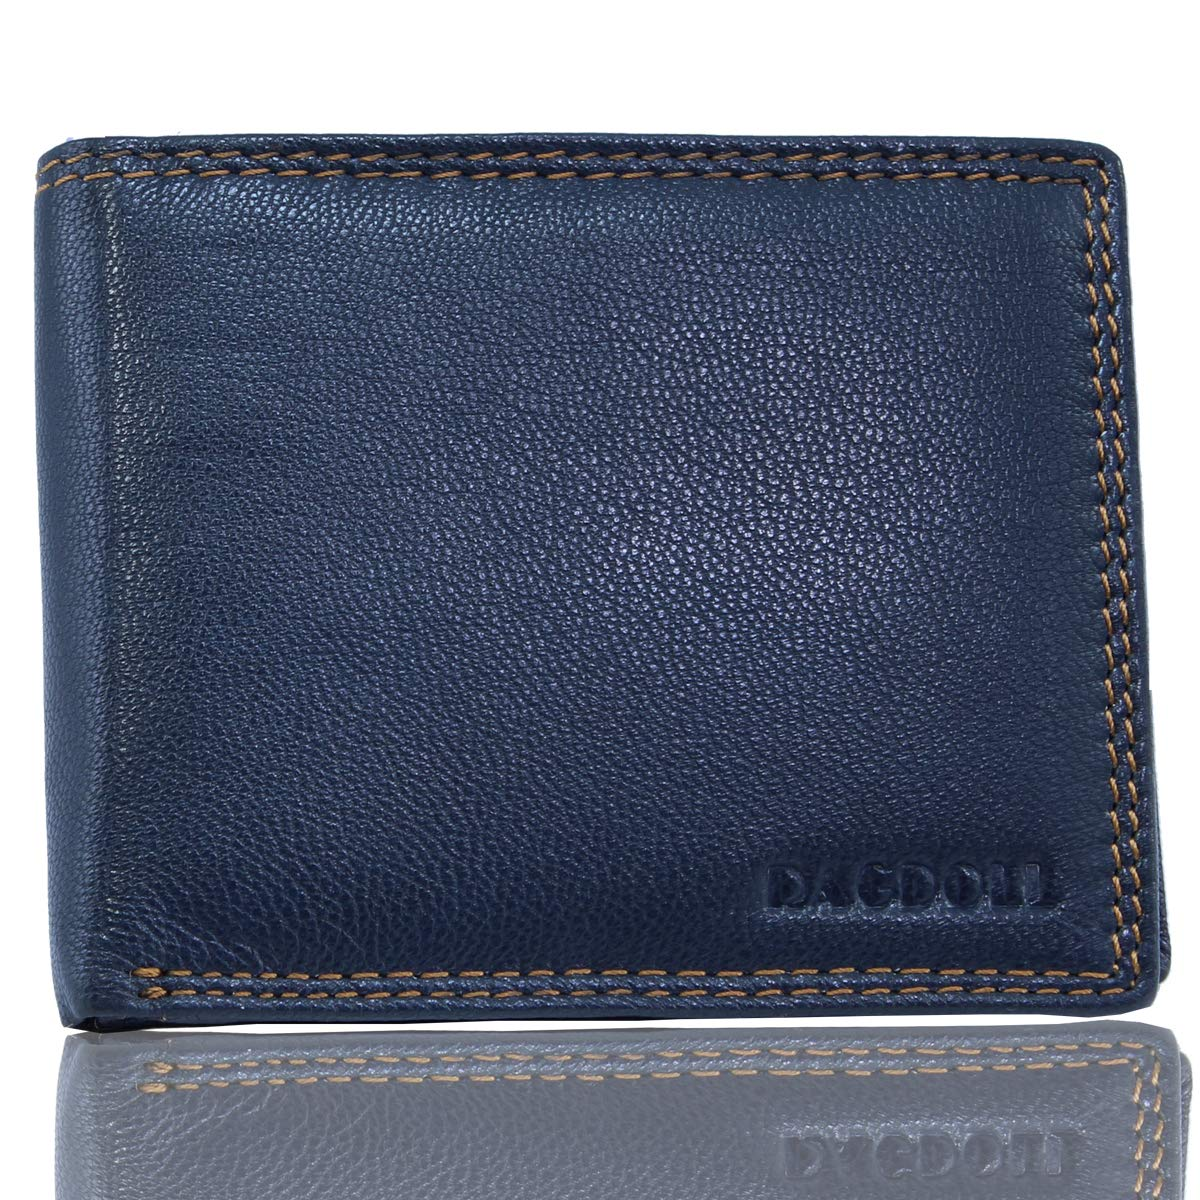 Ragdoll Men's Leather Wallet (Teal Blue Edition)